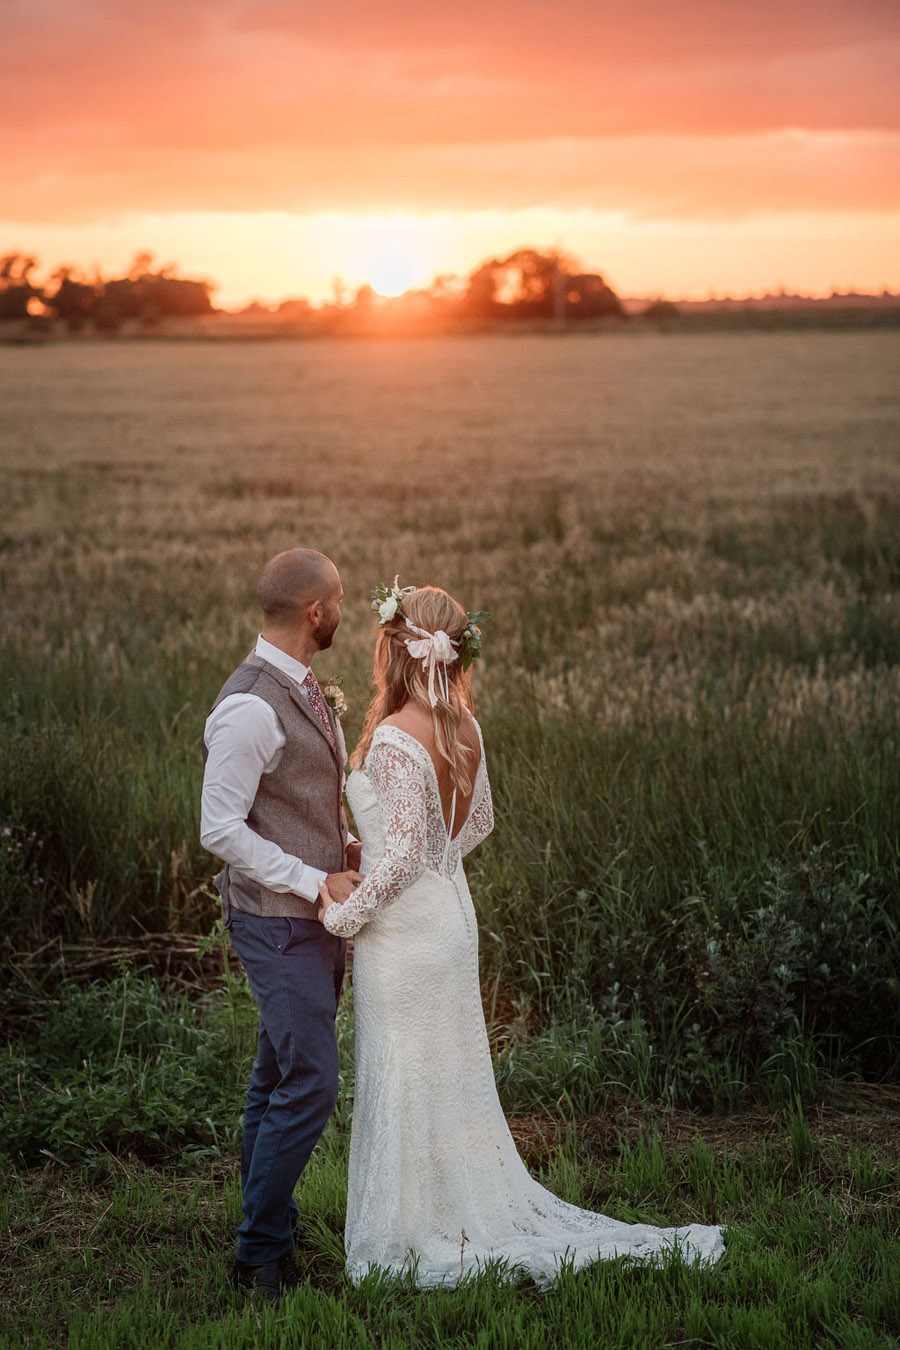 Evening sunset wedding inspiration at Willow Grange Farm, with Becky Harley Photography (56)